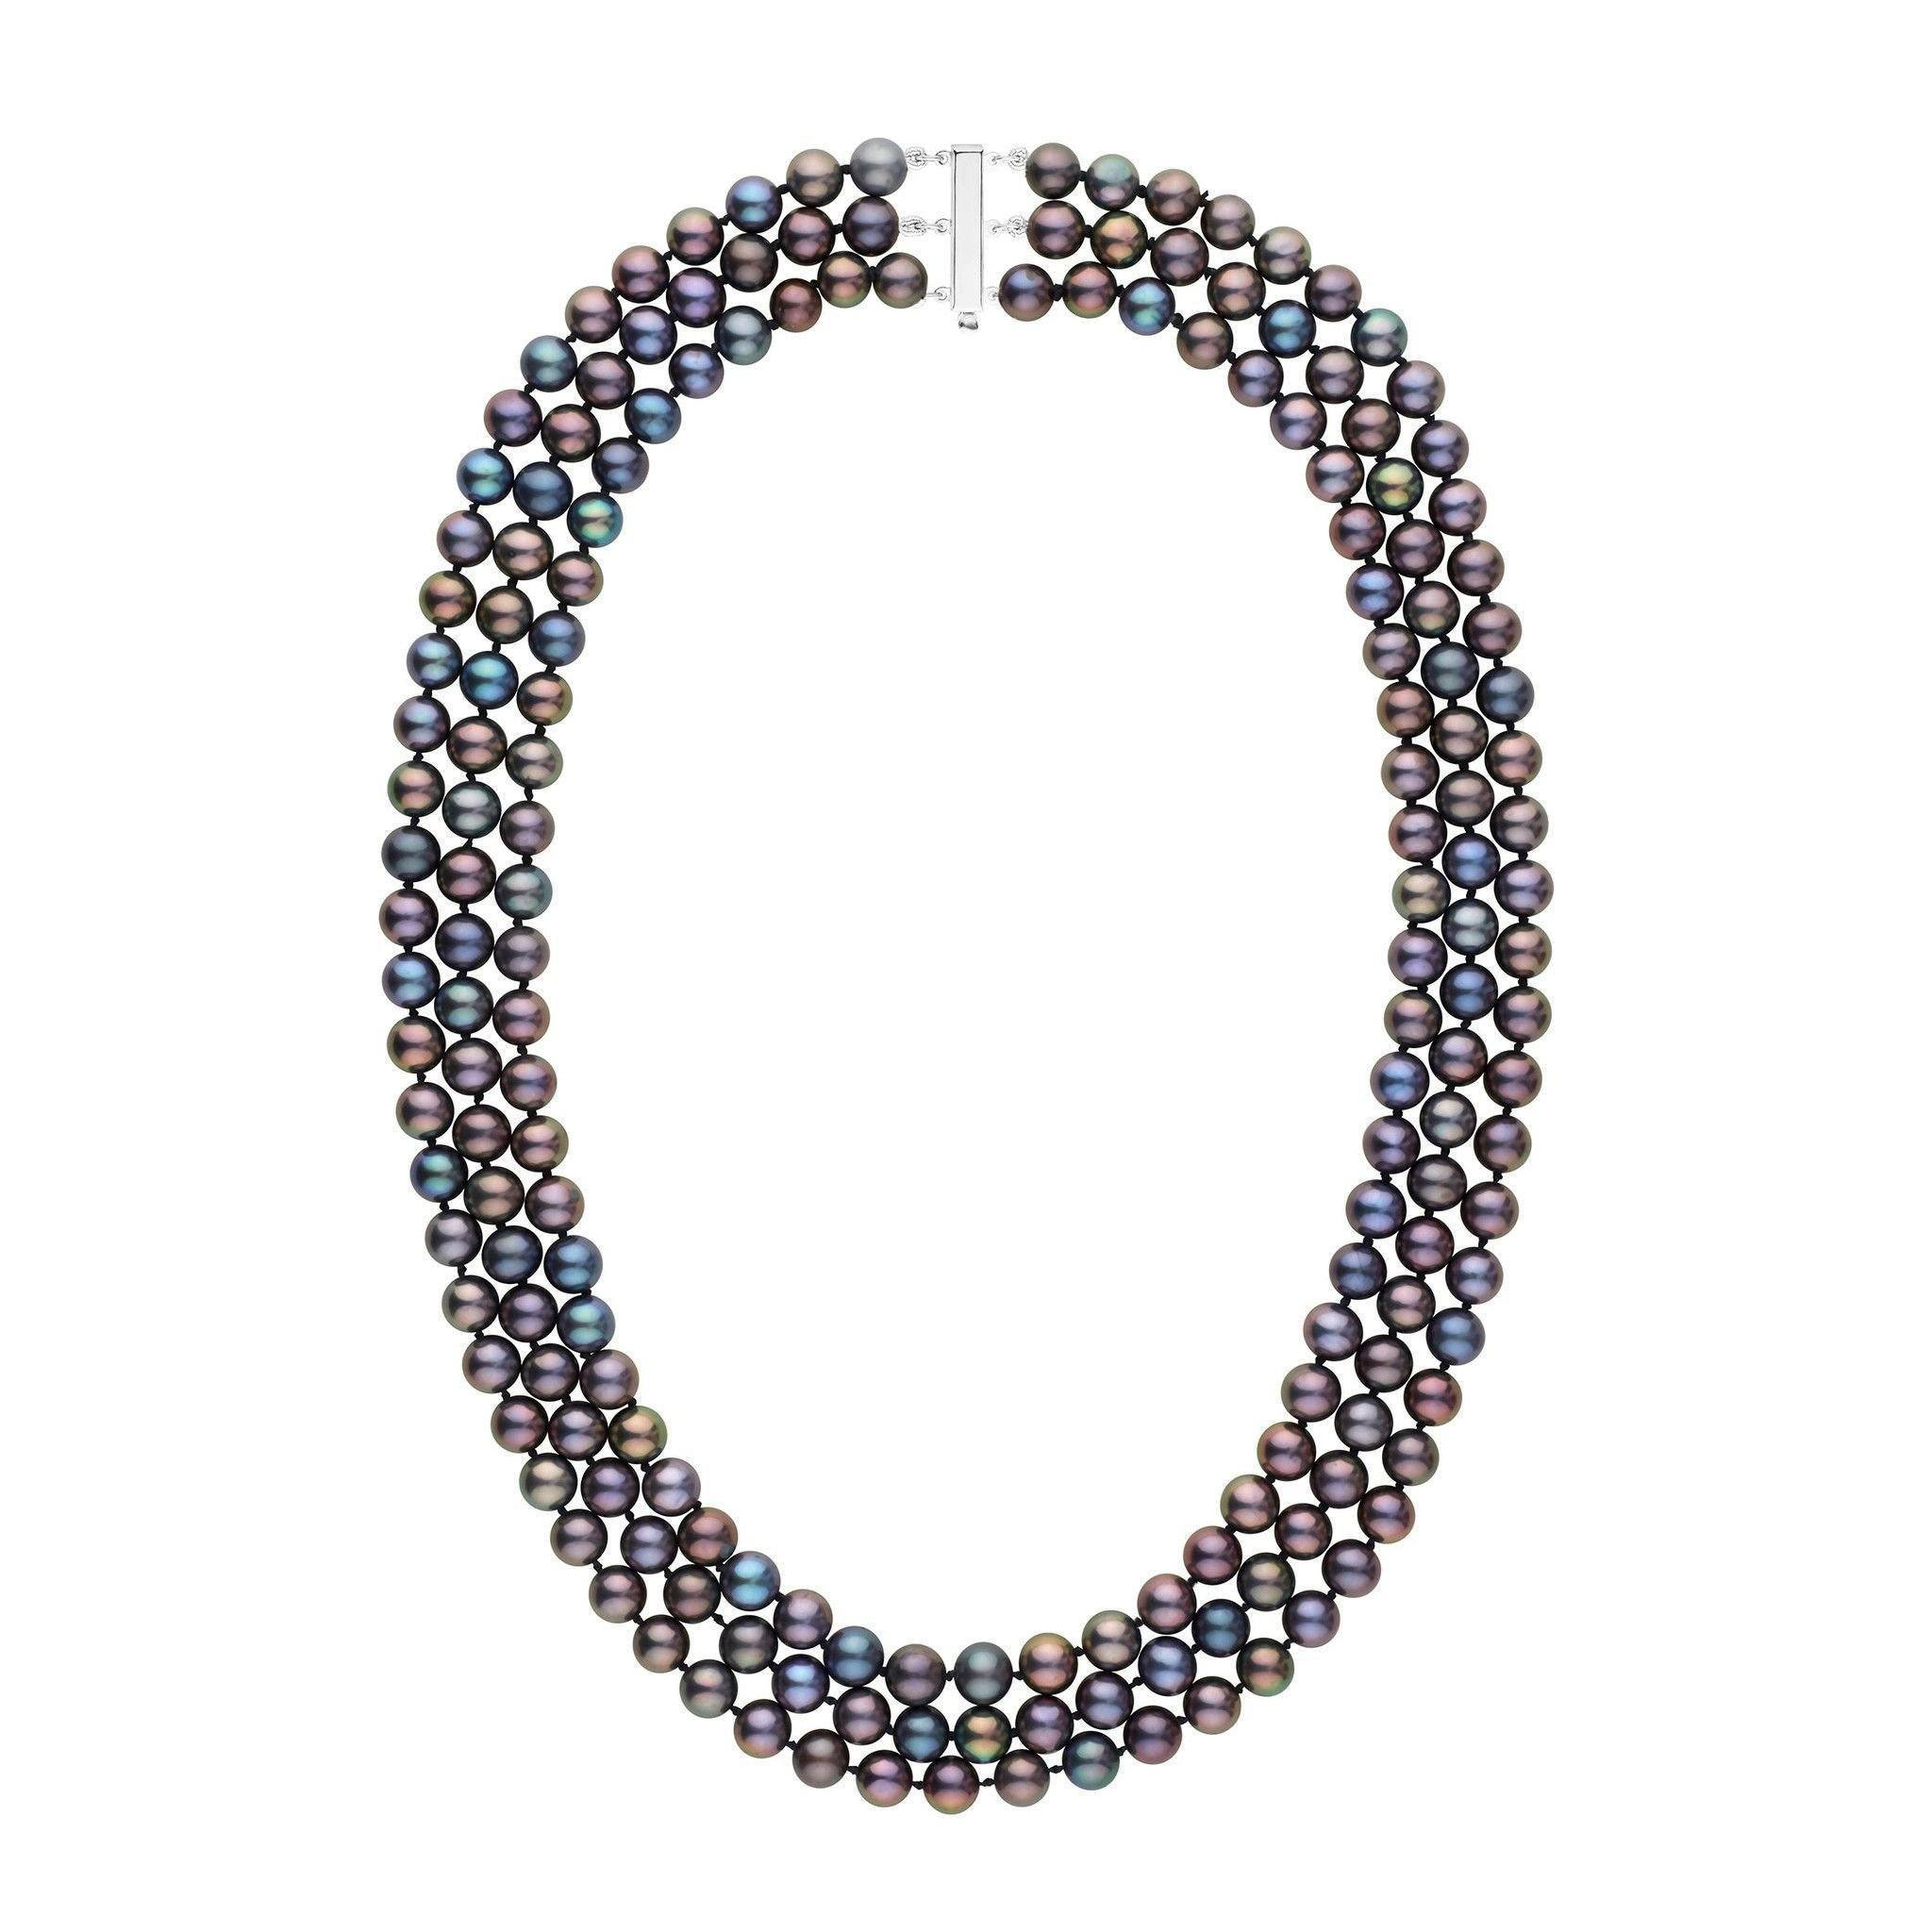 6.5-7.0 mm Triple-Strand AAA Black Freshwater Pearl Necklace